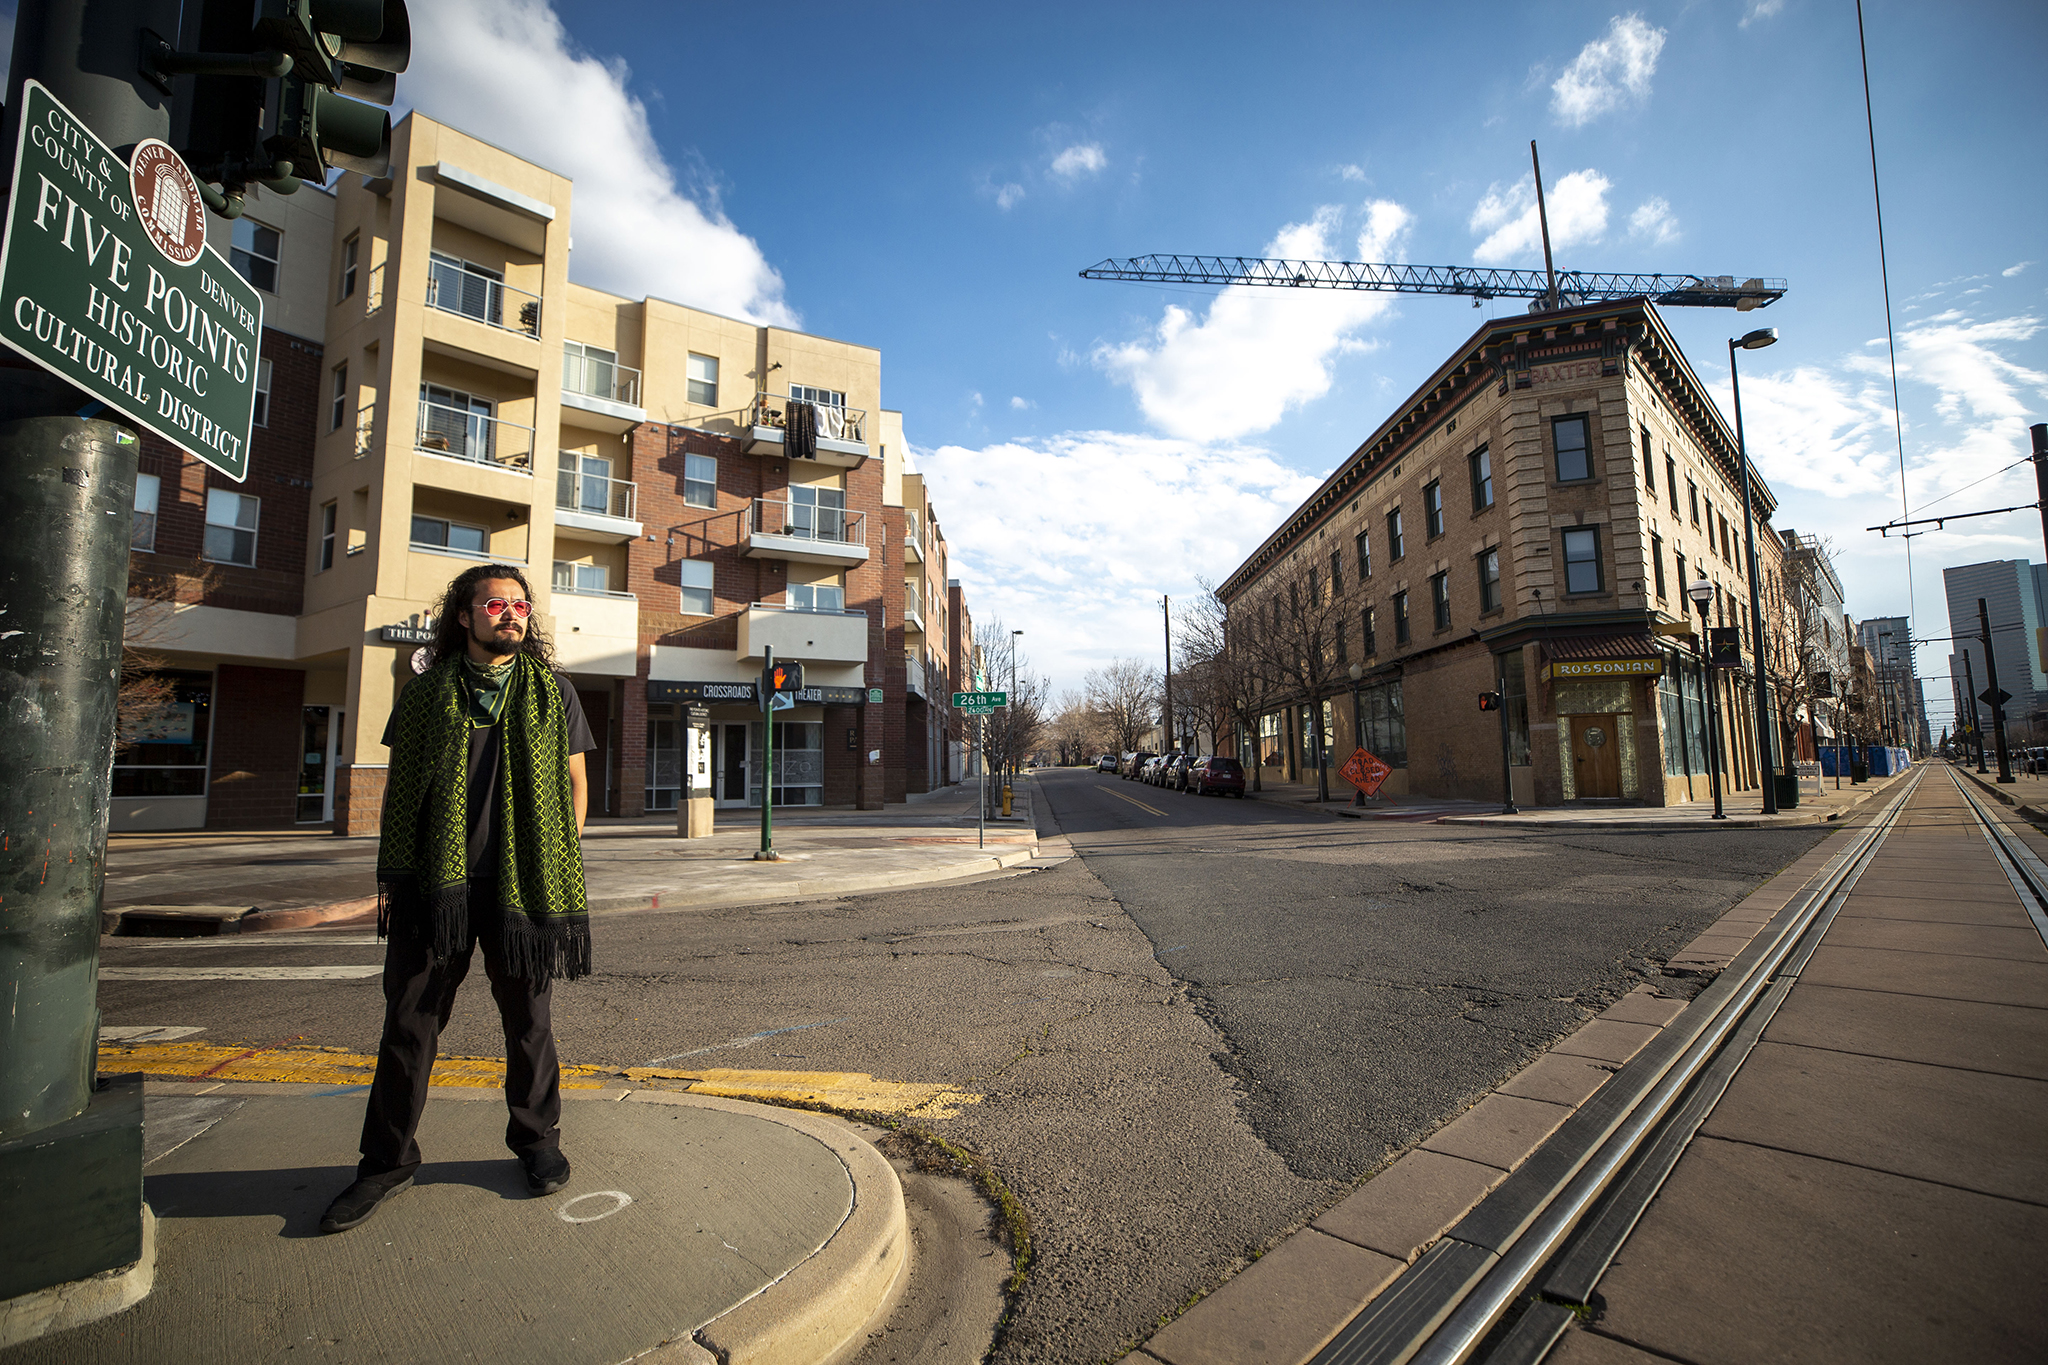 Ryan Foo poses in Five Points by the shuttered Crossroads Theater where the Black Actors Guild once held court. April 9, 2020.